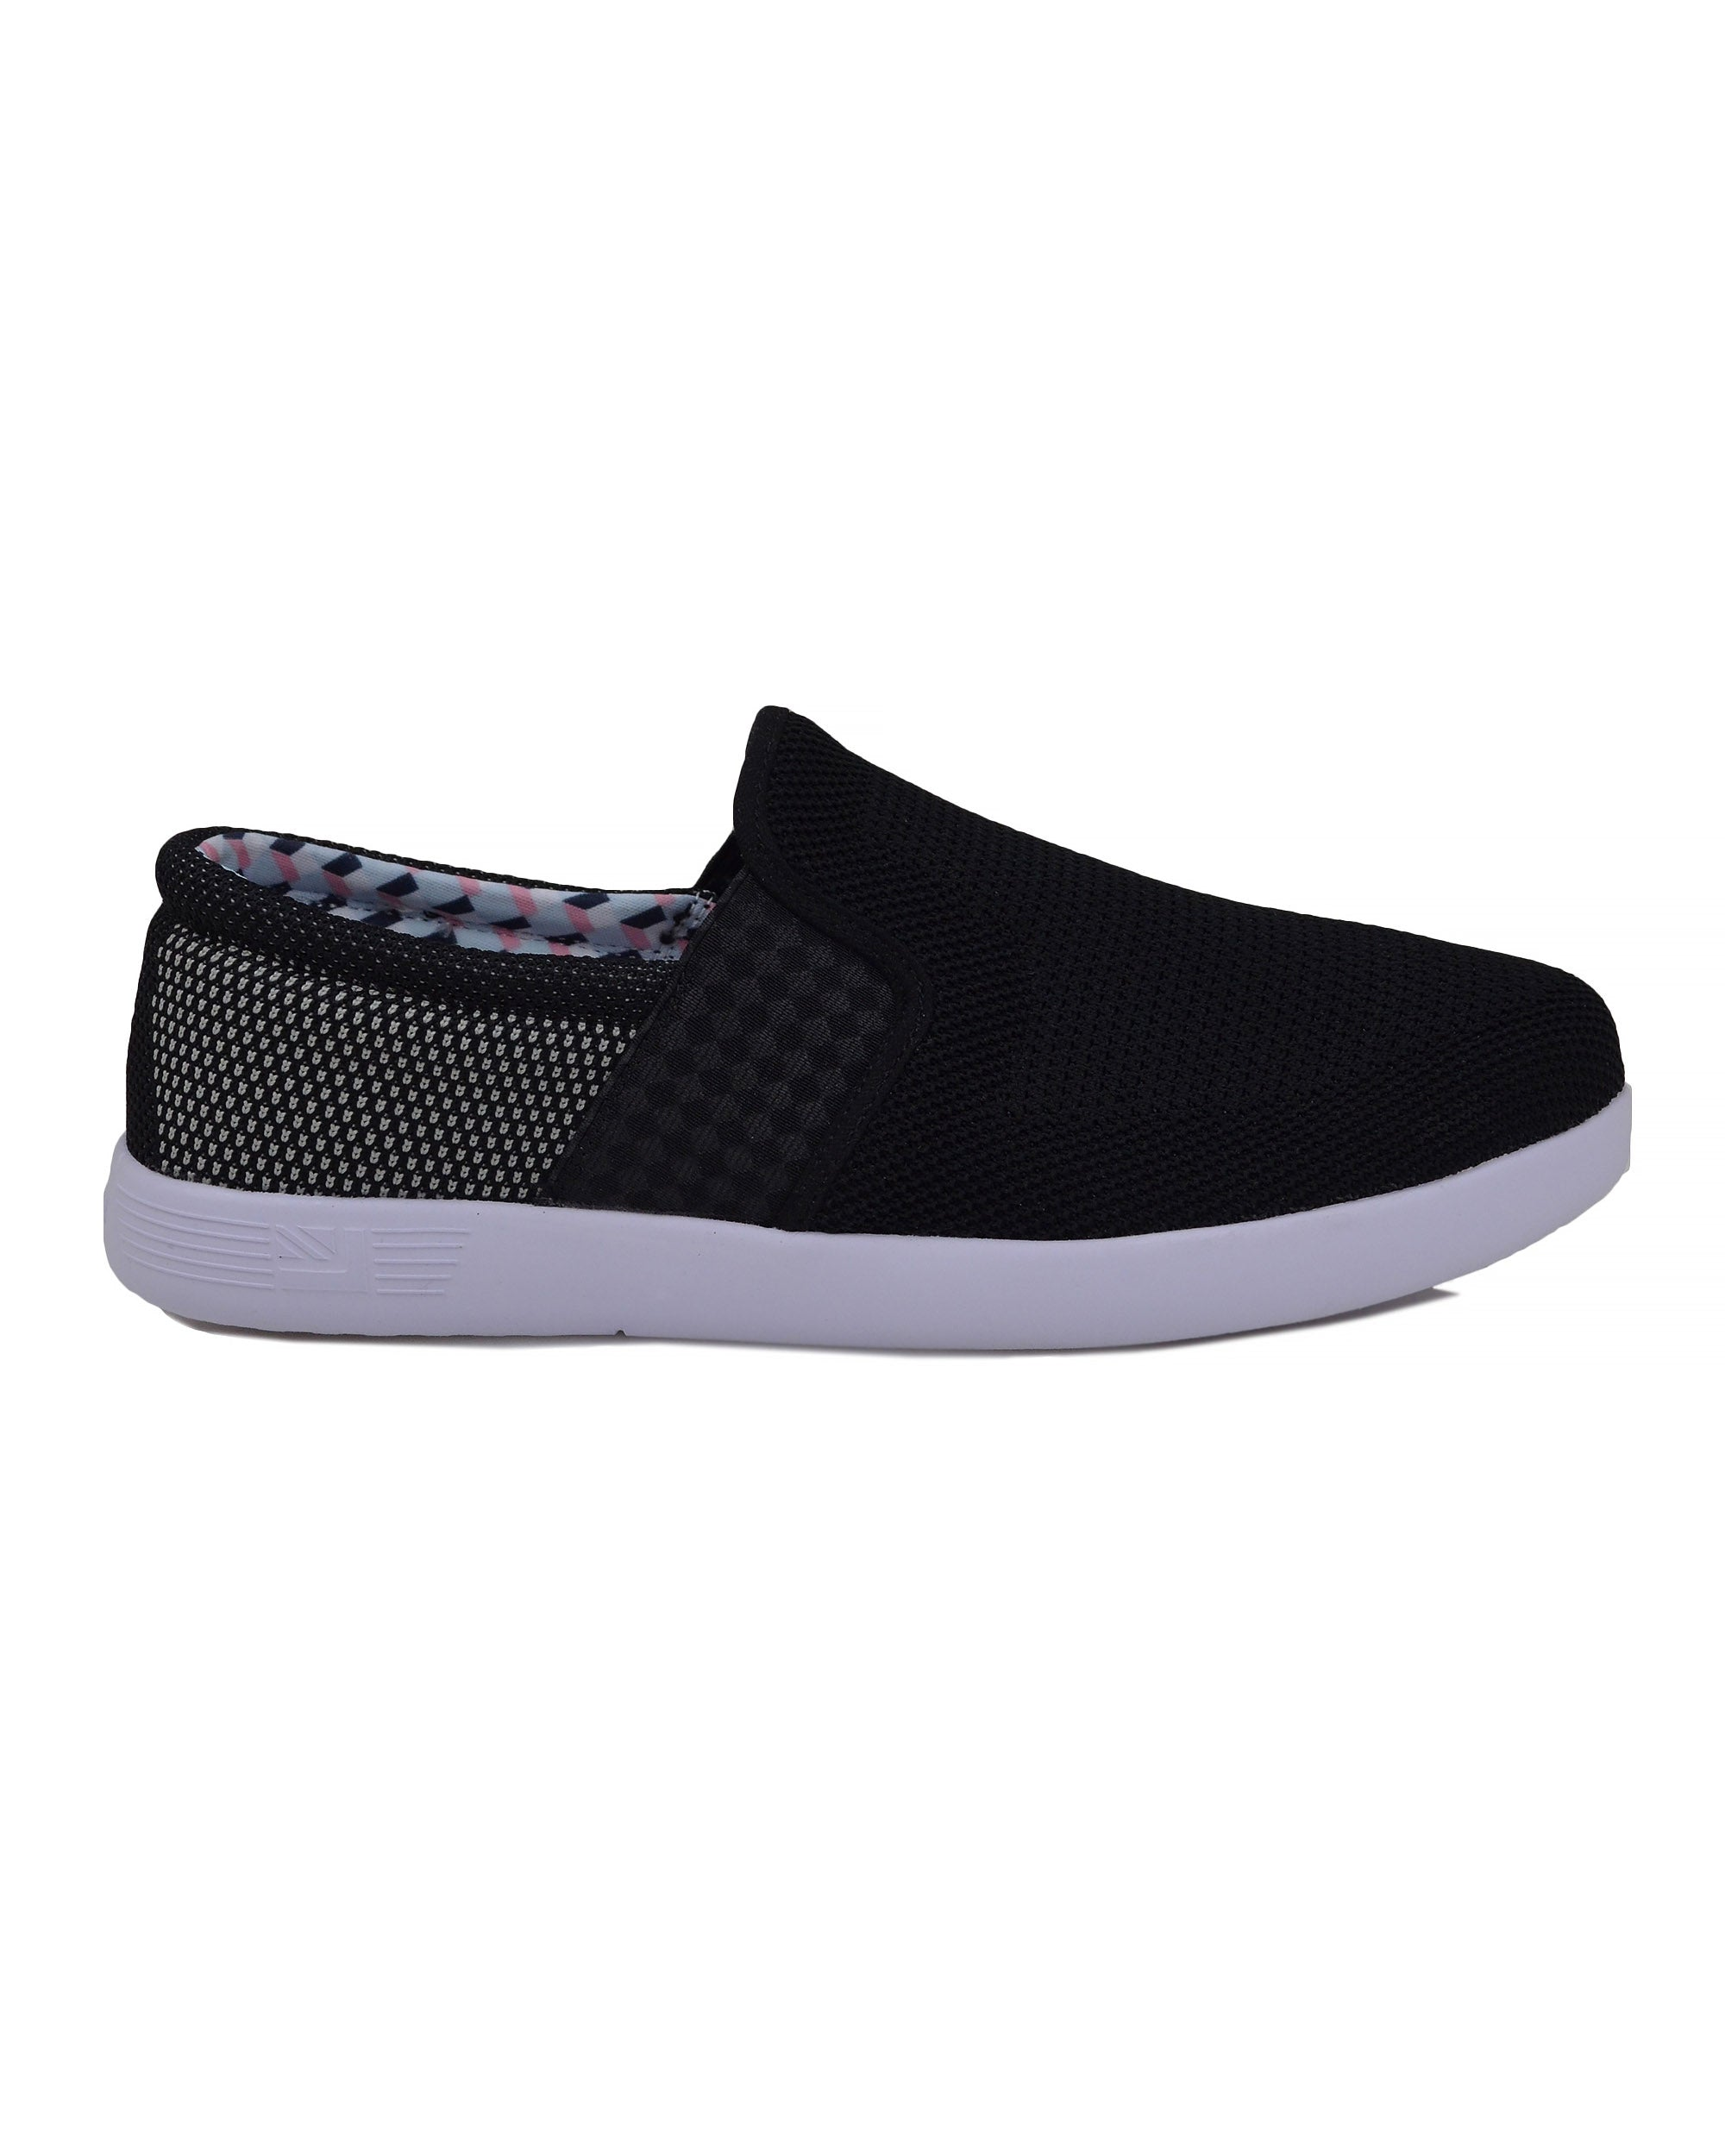 Parnell Mesh Slip-On Sneaker - Black